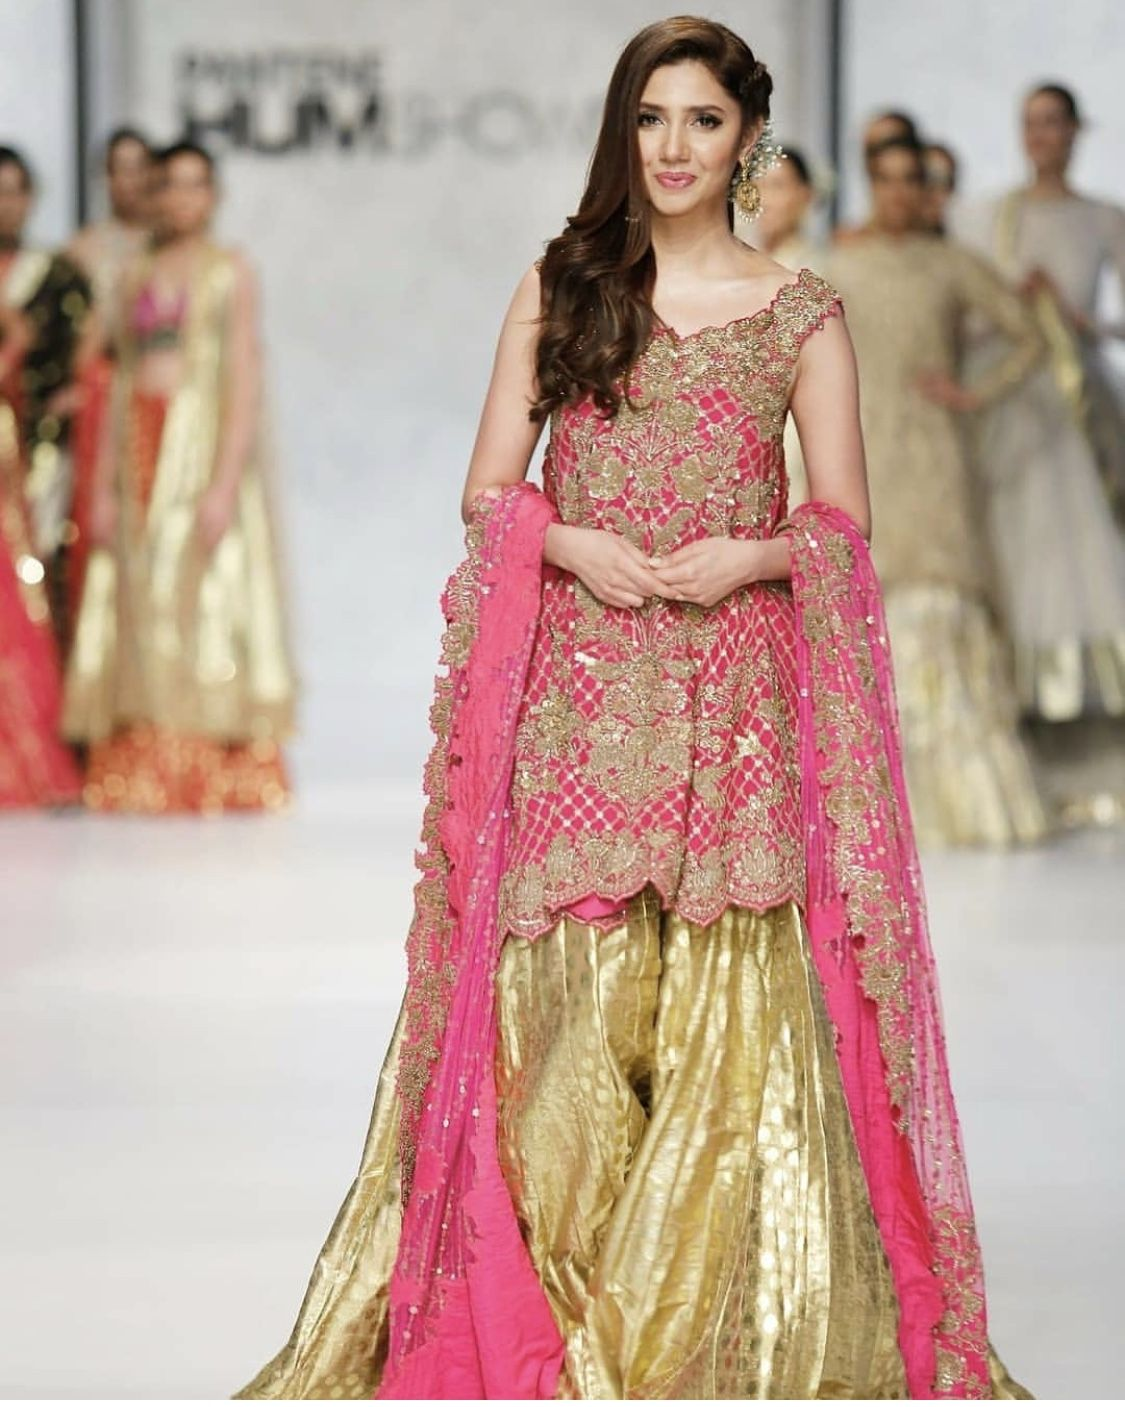 Pin de SyeDa JafRi en Wedding Dresses.. | Pinterest